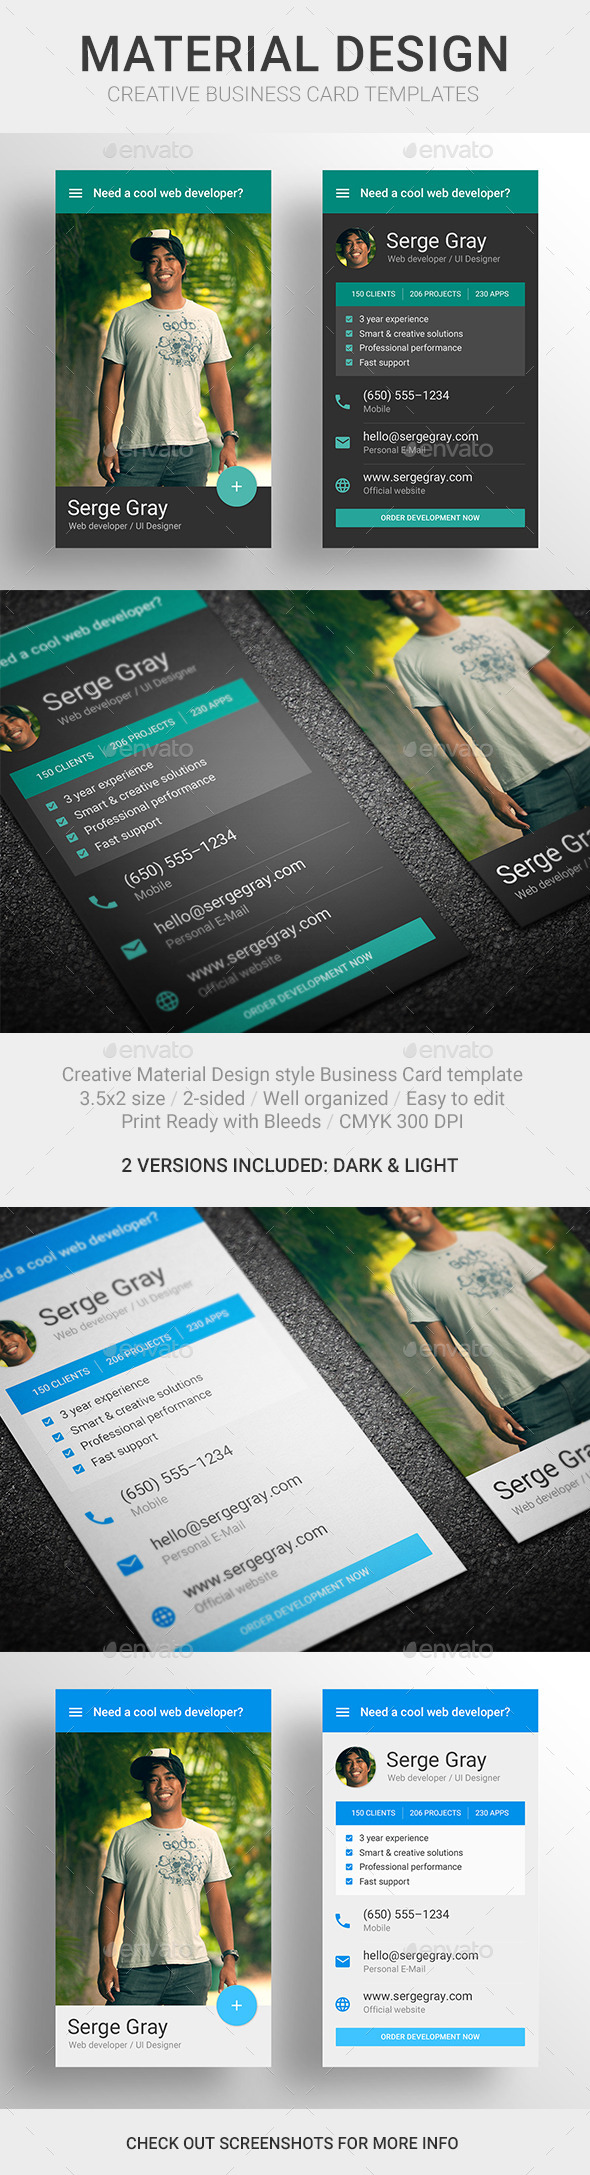 MaDe - Material Design Business Card Template - Creative Business Cards